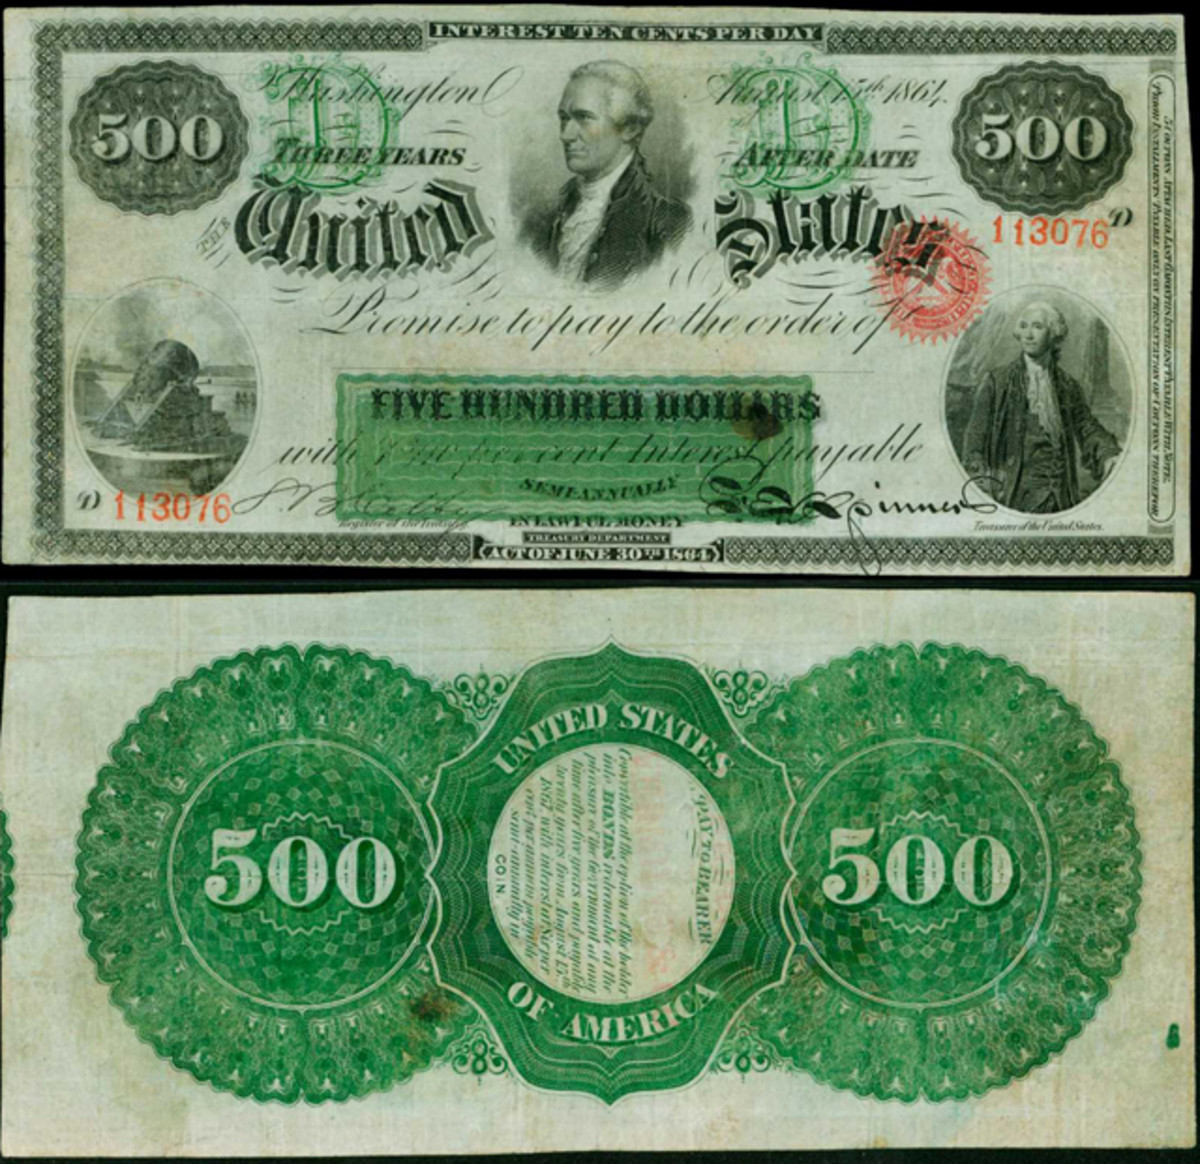 This exceedingly rare 1864 Interesting Bearing Note is estimated at $300,000 to $500,000 in Stack's Bowers Galleries' sale in Baltimore.